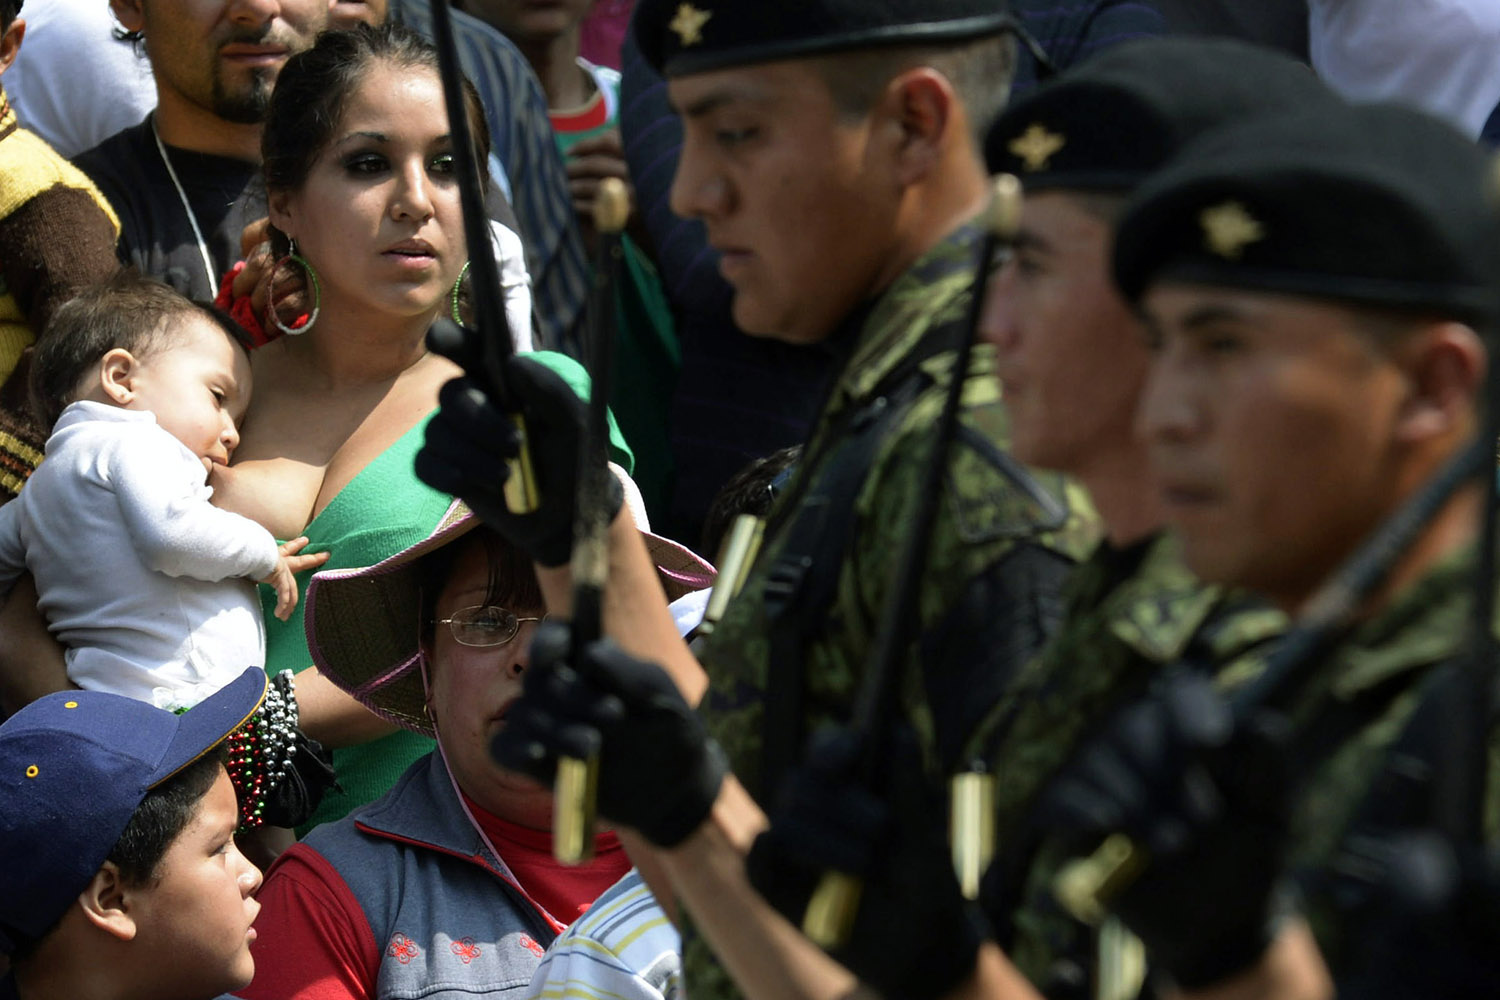 Sept.16, 2012. A woman breastfeeds her child while attending a parade during the celebration of the 202nd anniversary of Mexico's independence at Juarez Avenue in Mexico City.